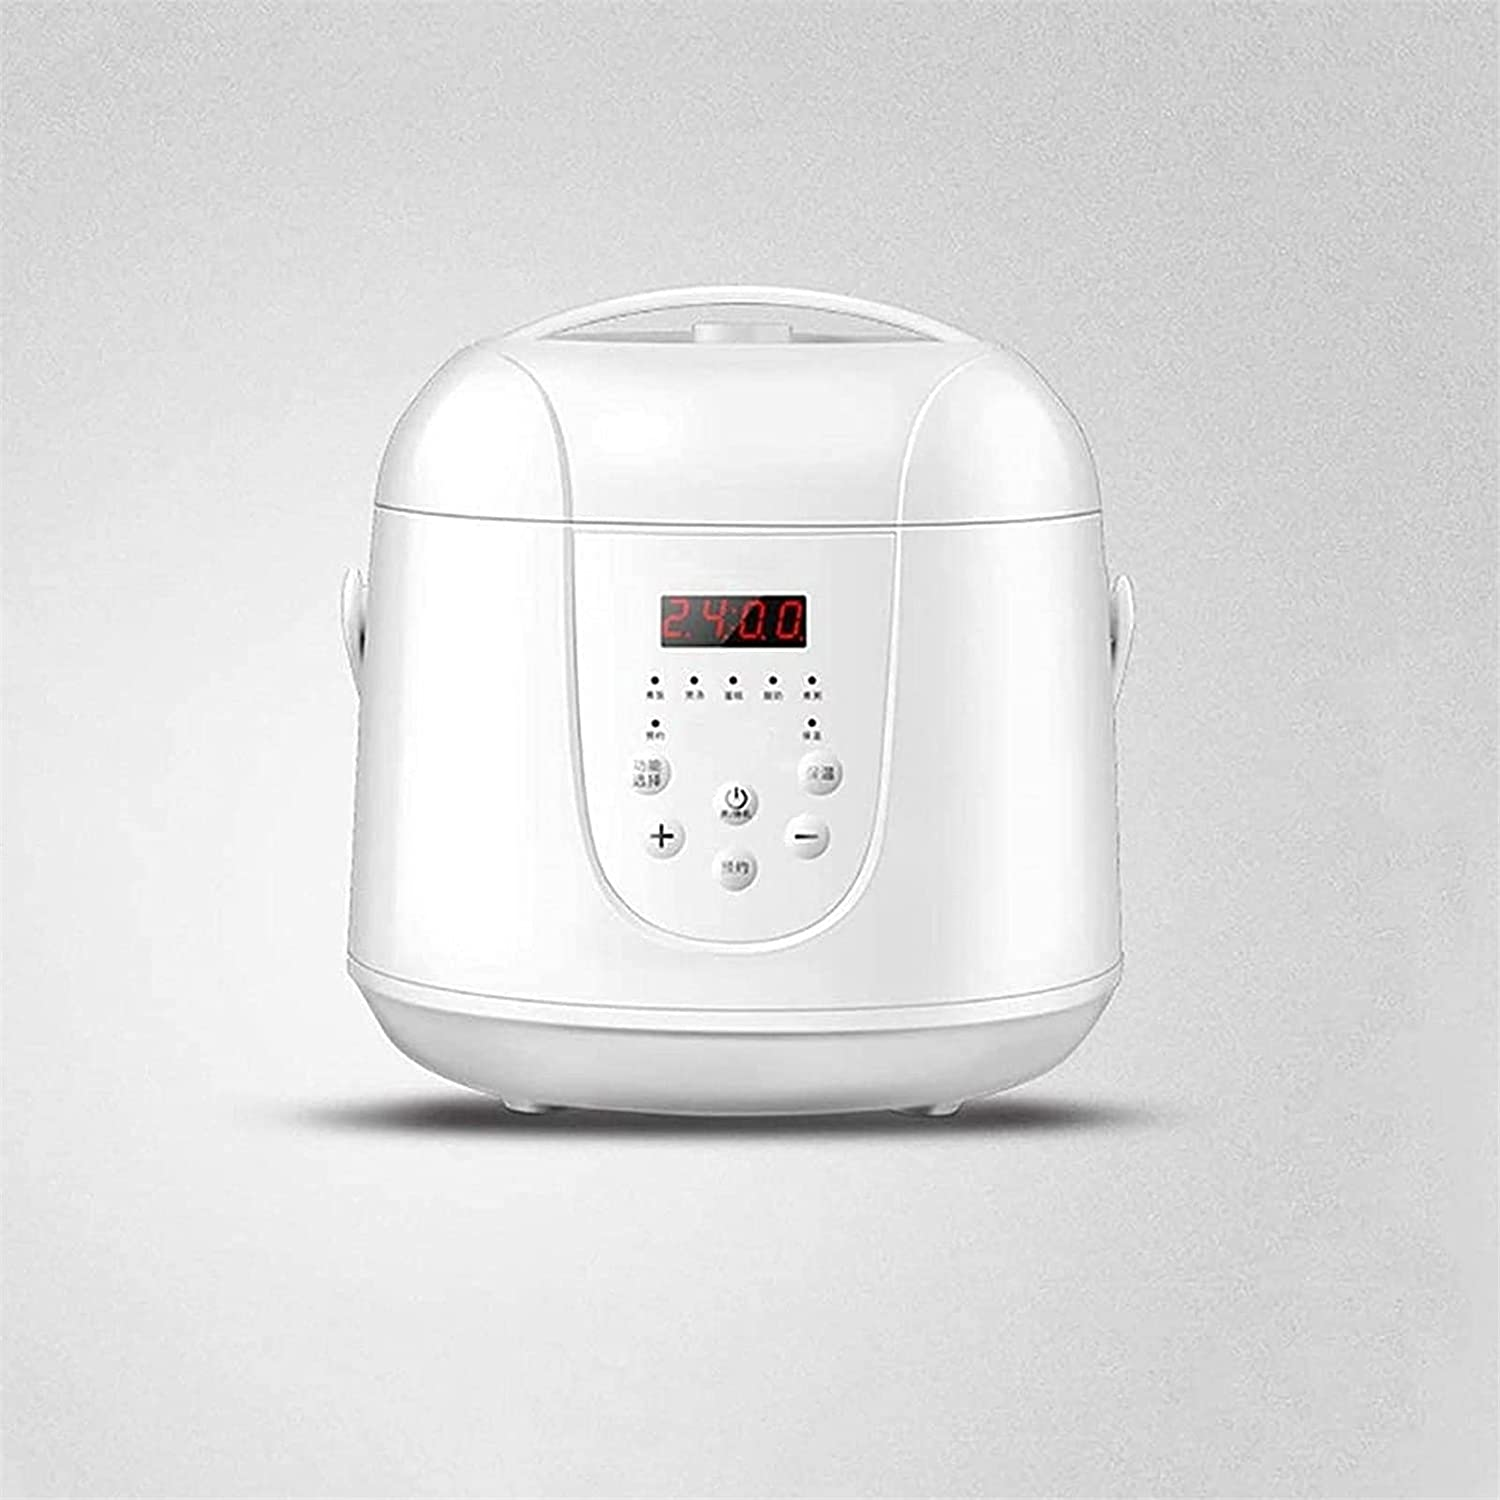 Pans for cooking 2.0L Rice Cooker Multifunction Rice Cooker Mini Rice Cooker Slow Cooker Steamer Yogurt Cake Maker and Warmer Quick Cooking for Home Kitchen (24 Person) (Color: Pink) (Color : White)